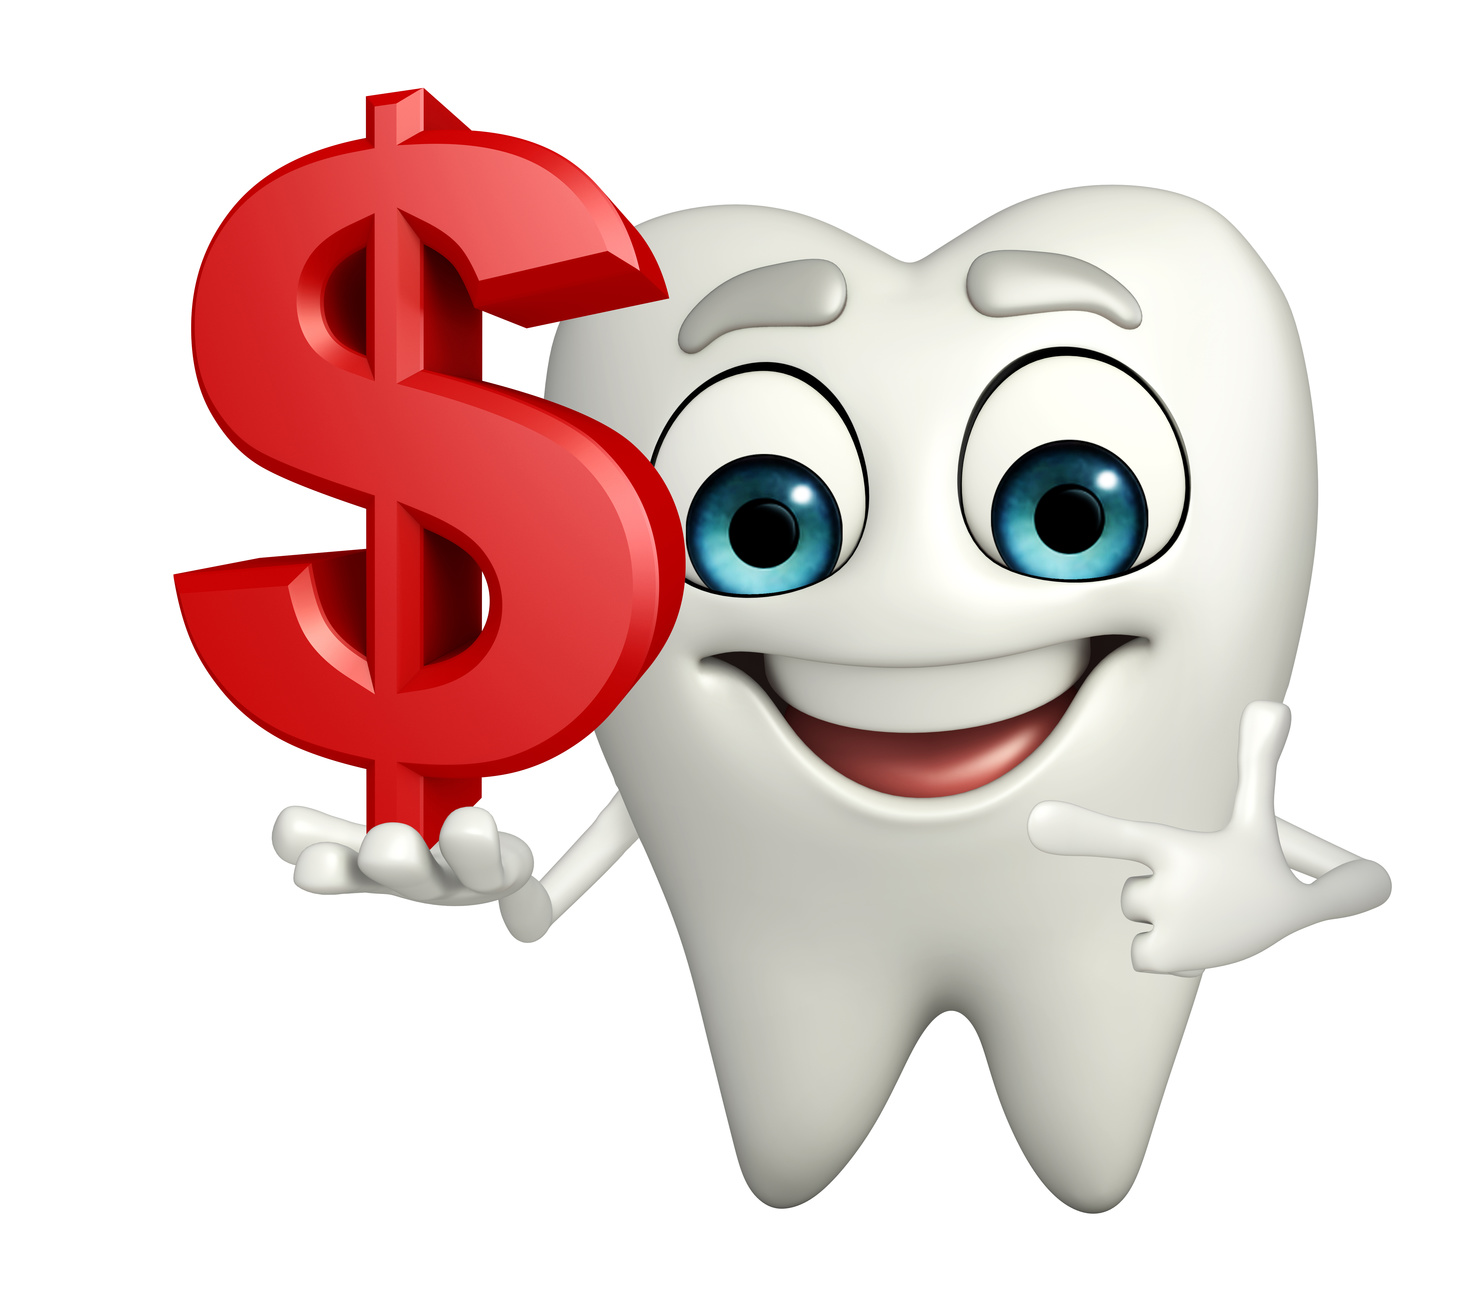 dental loans as an alternative to costly dental work